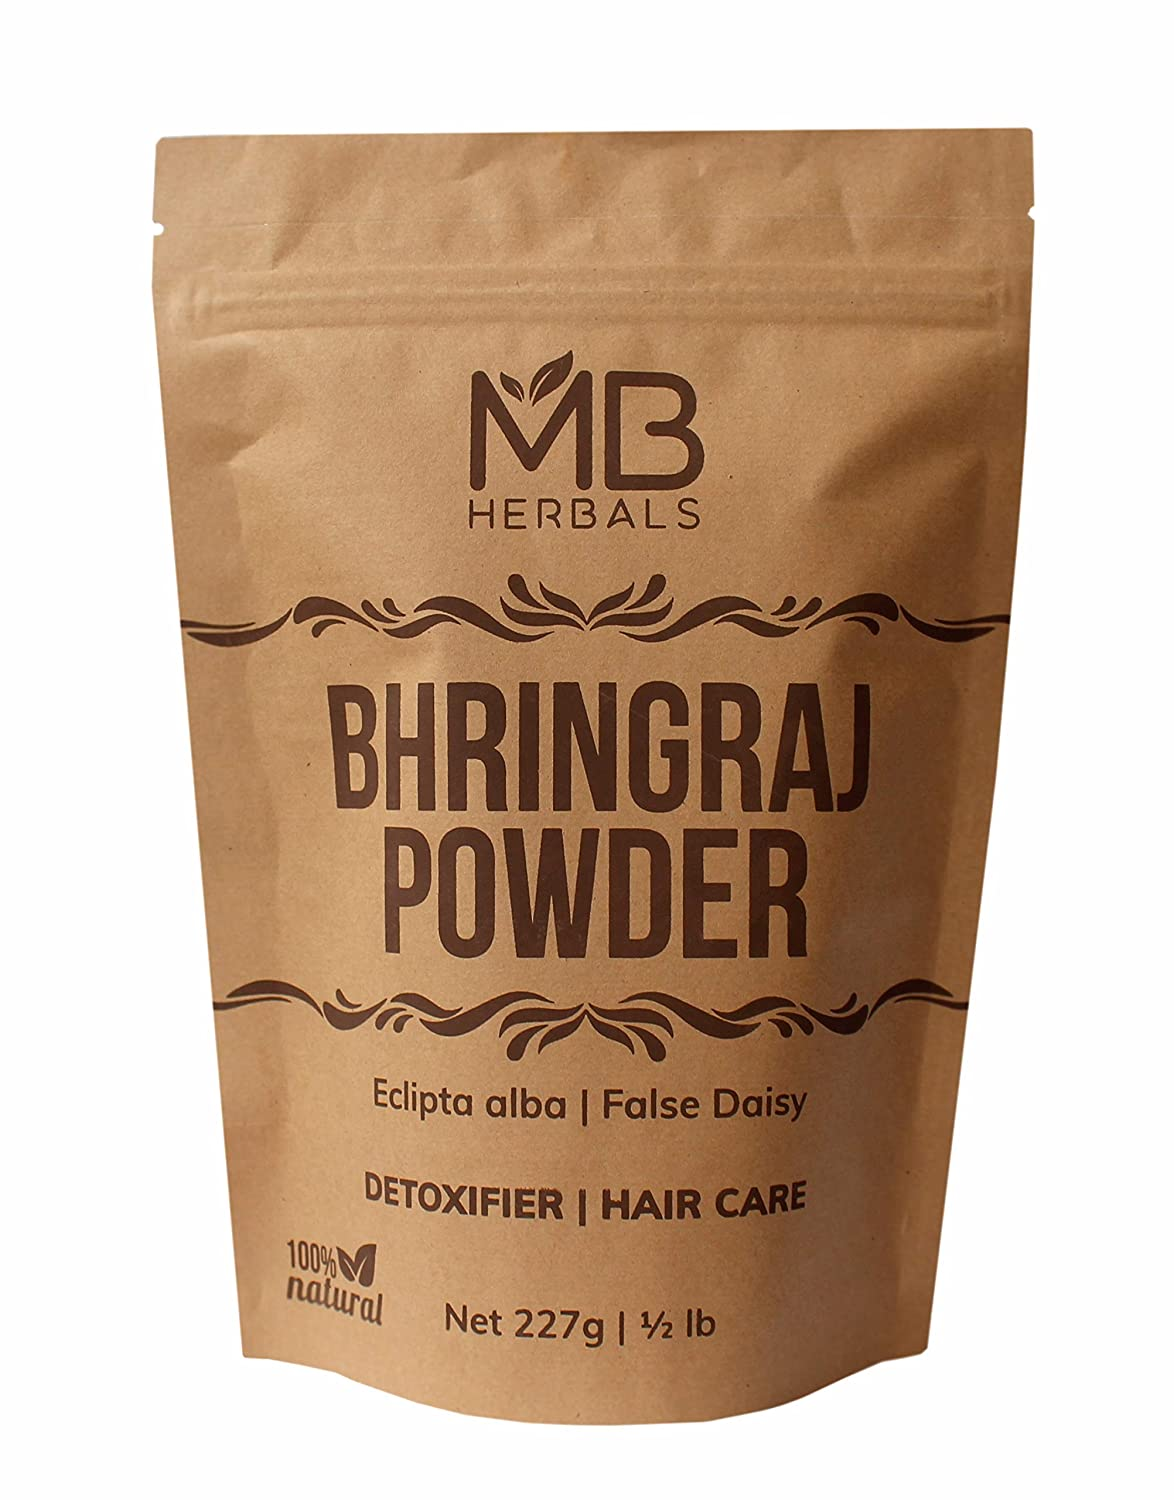 MB Herbals Pure Bhringraj Powder 227g   8.00 oz   Half Pound   Pure Bhringaraj Powder   100% Pure Eclipta alba Powder   Promotes Healthy Hair Growth   Increases Hair Thickness